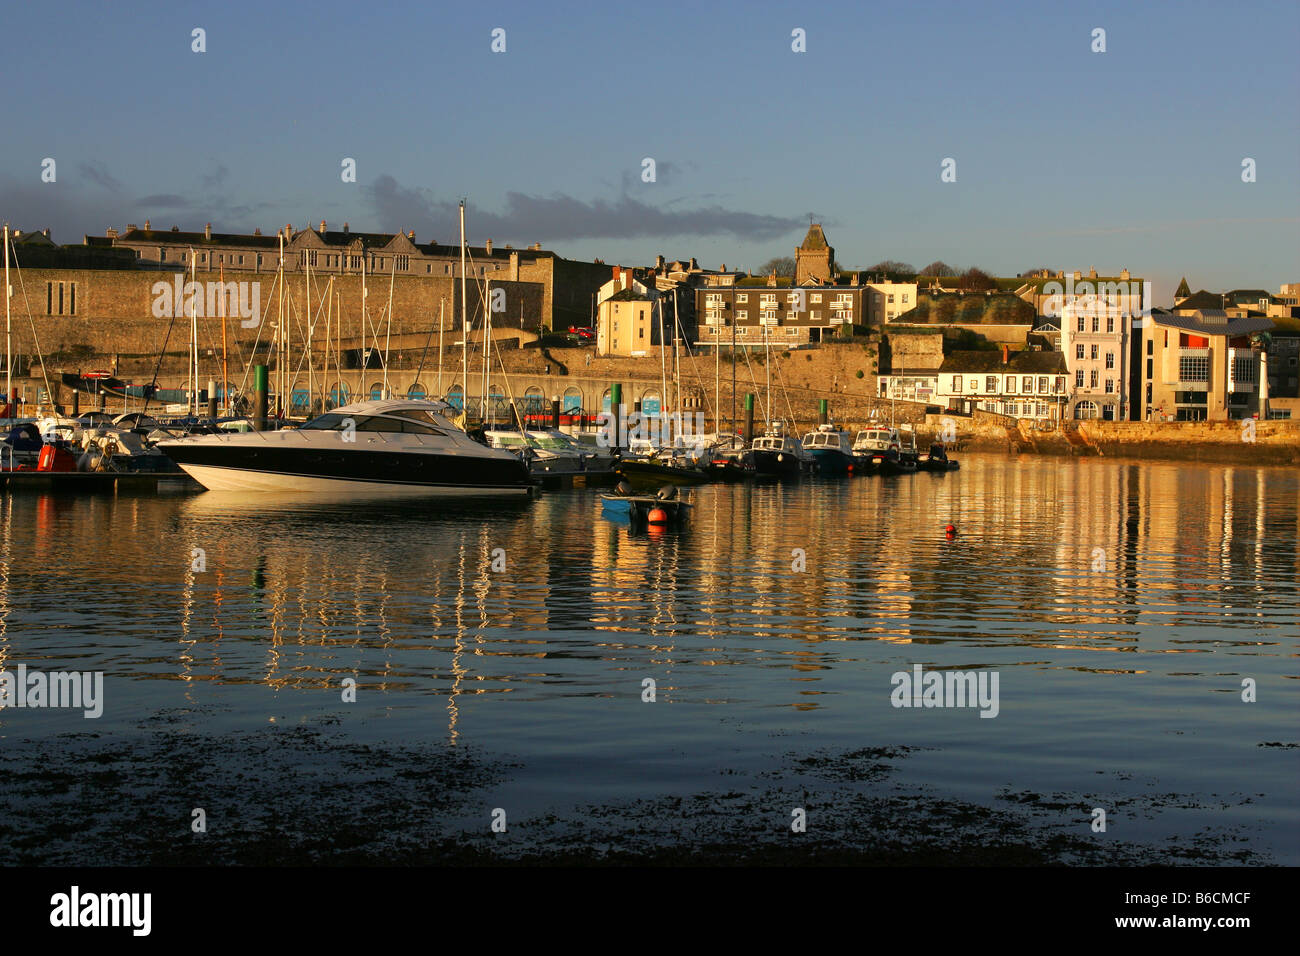 The barbican in Plymouth, Devon, with Queen Anne's Battery Marina in the foreground. - Stock Image